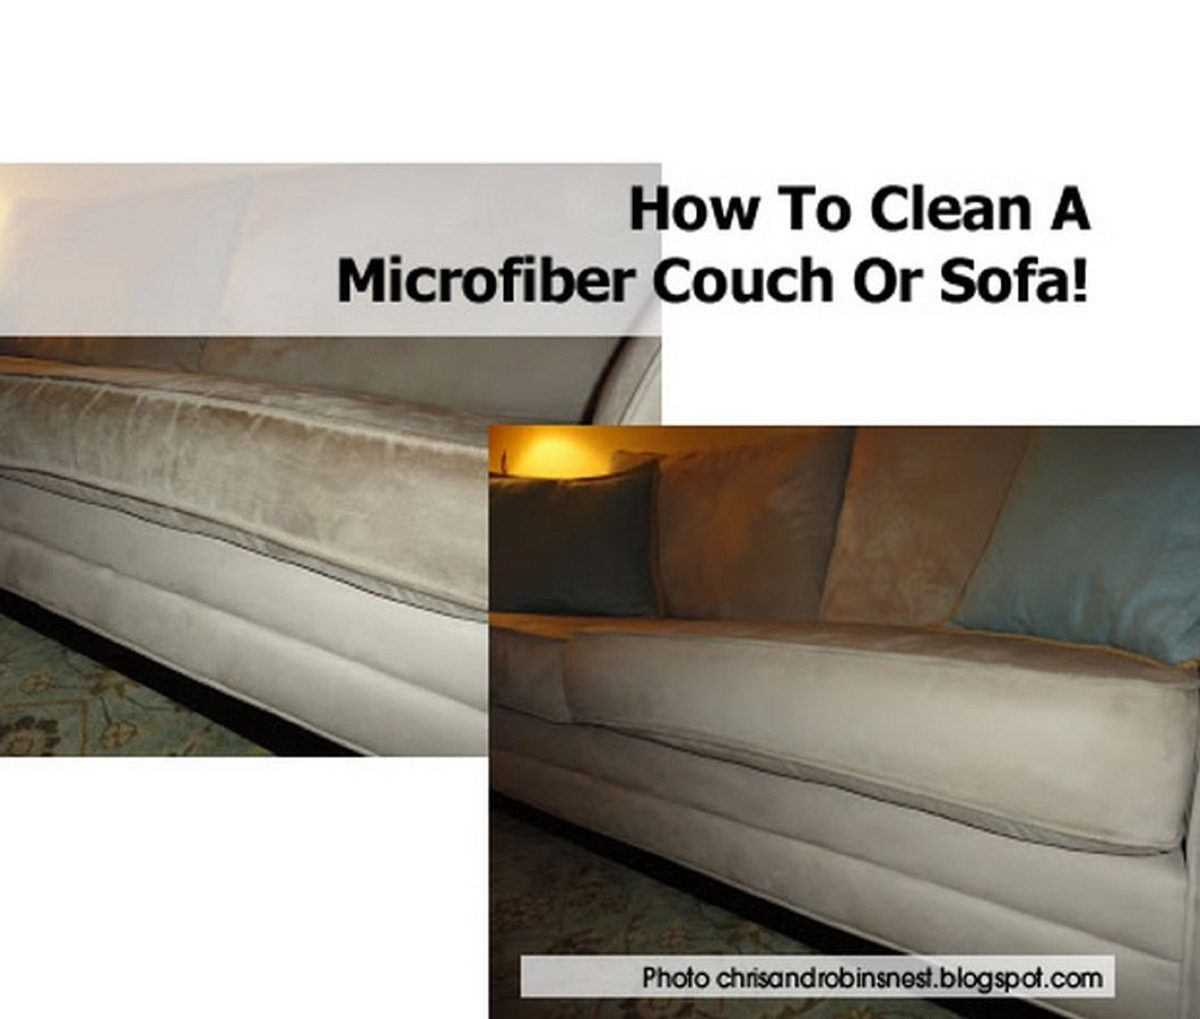 How To Clean A Microfiber Couch Or Sofa